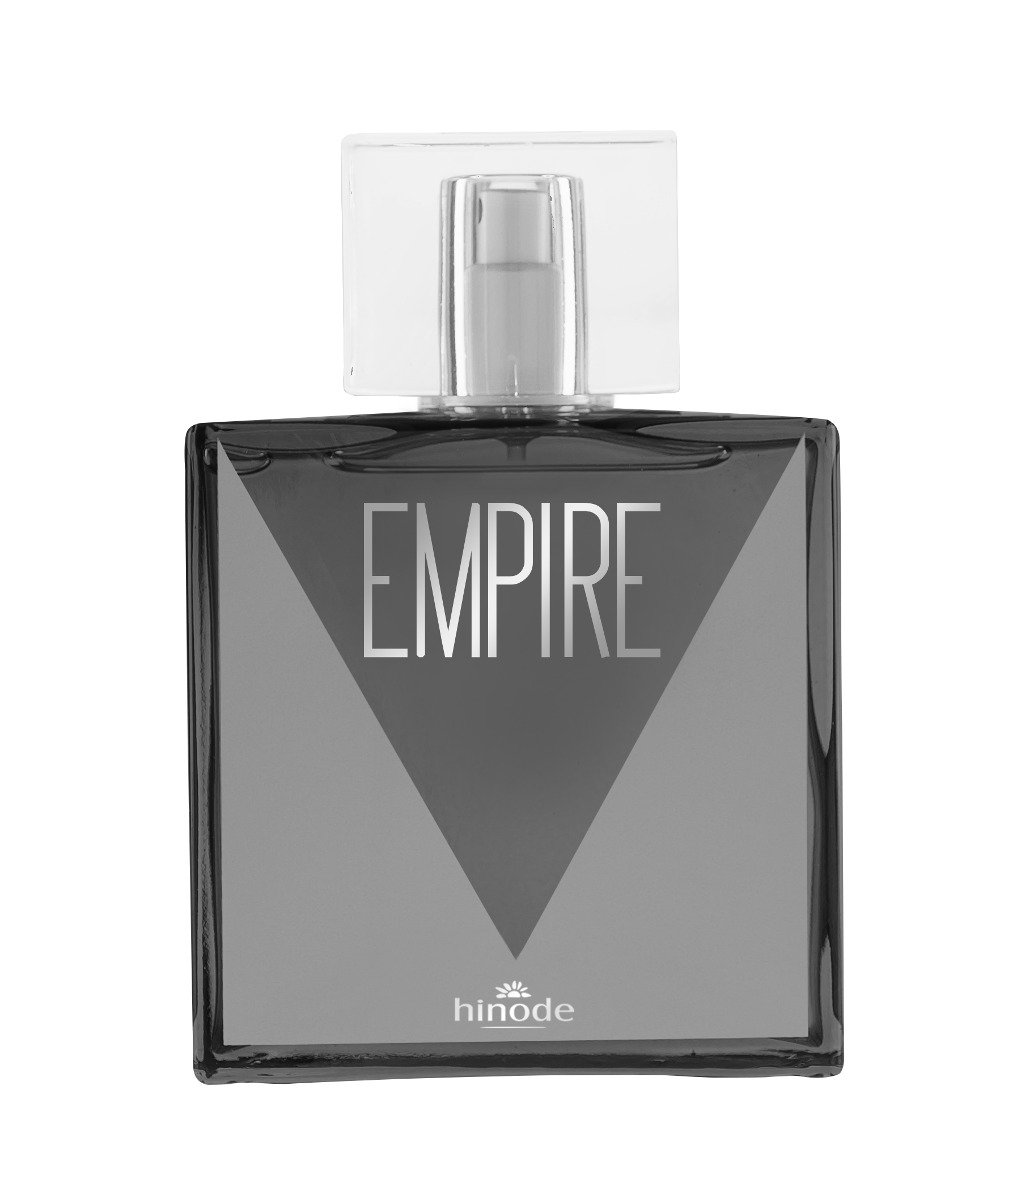 Perfume Empire Hinode 100ml